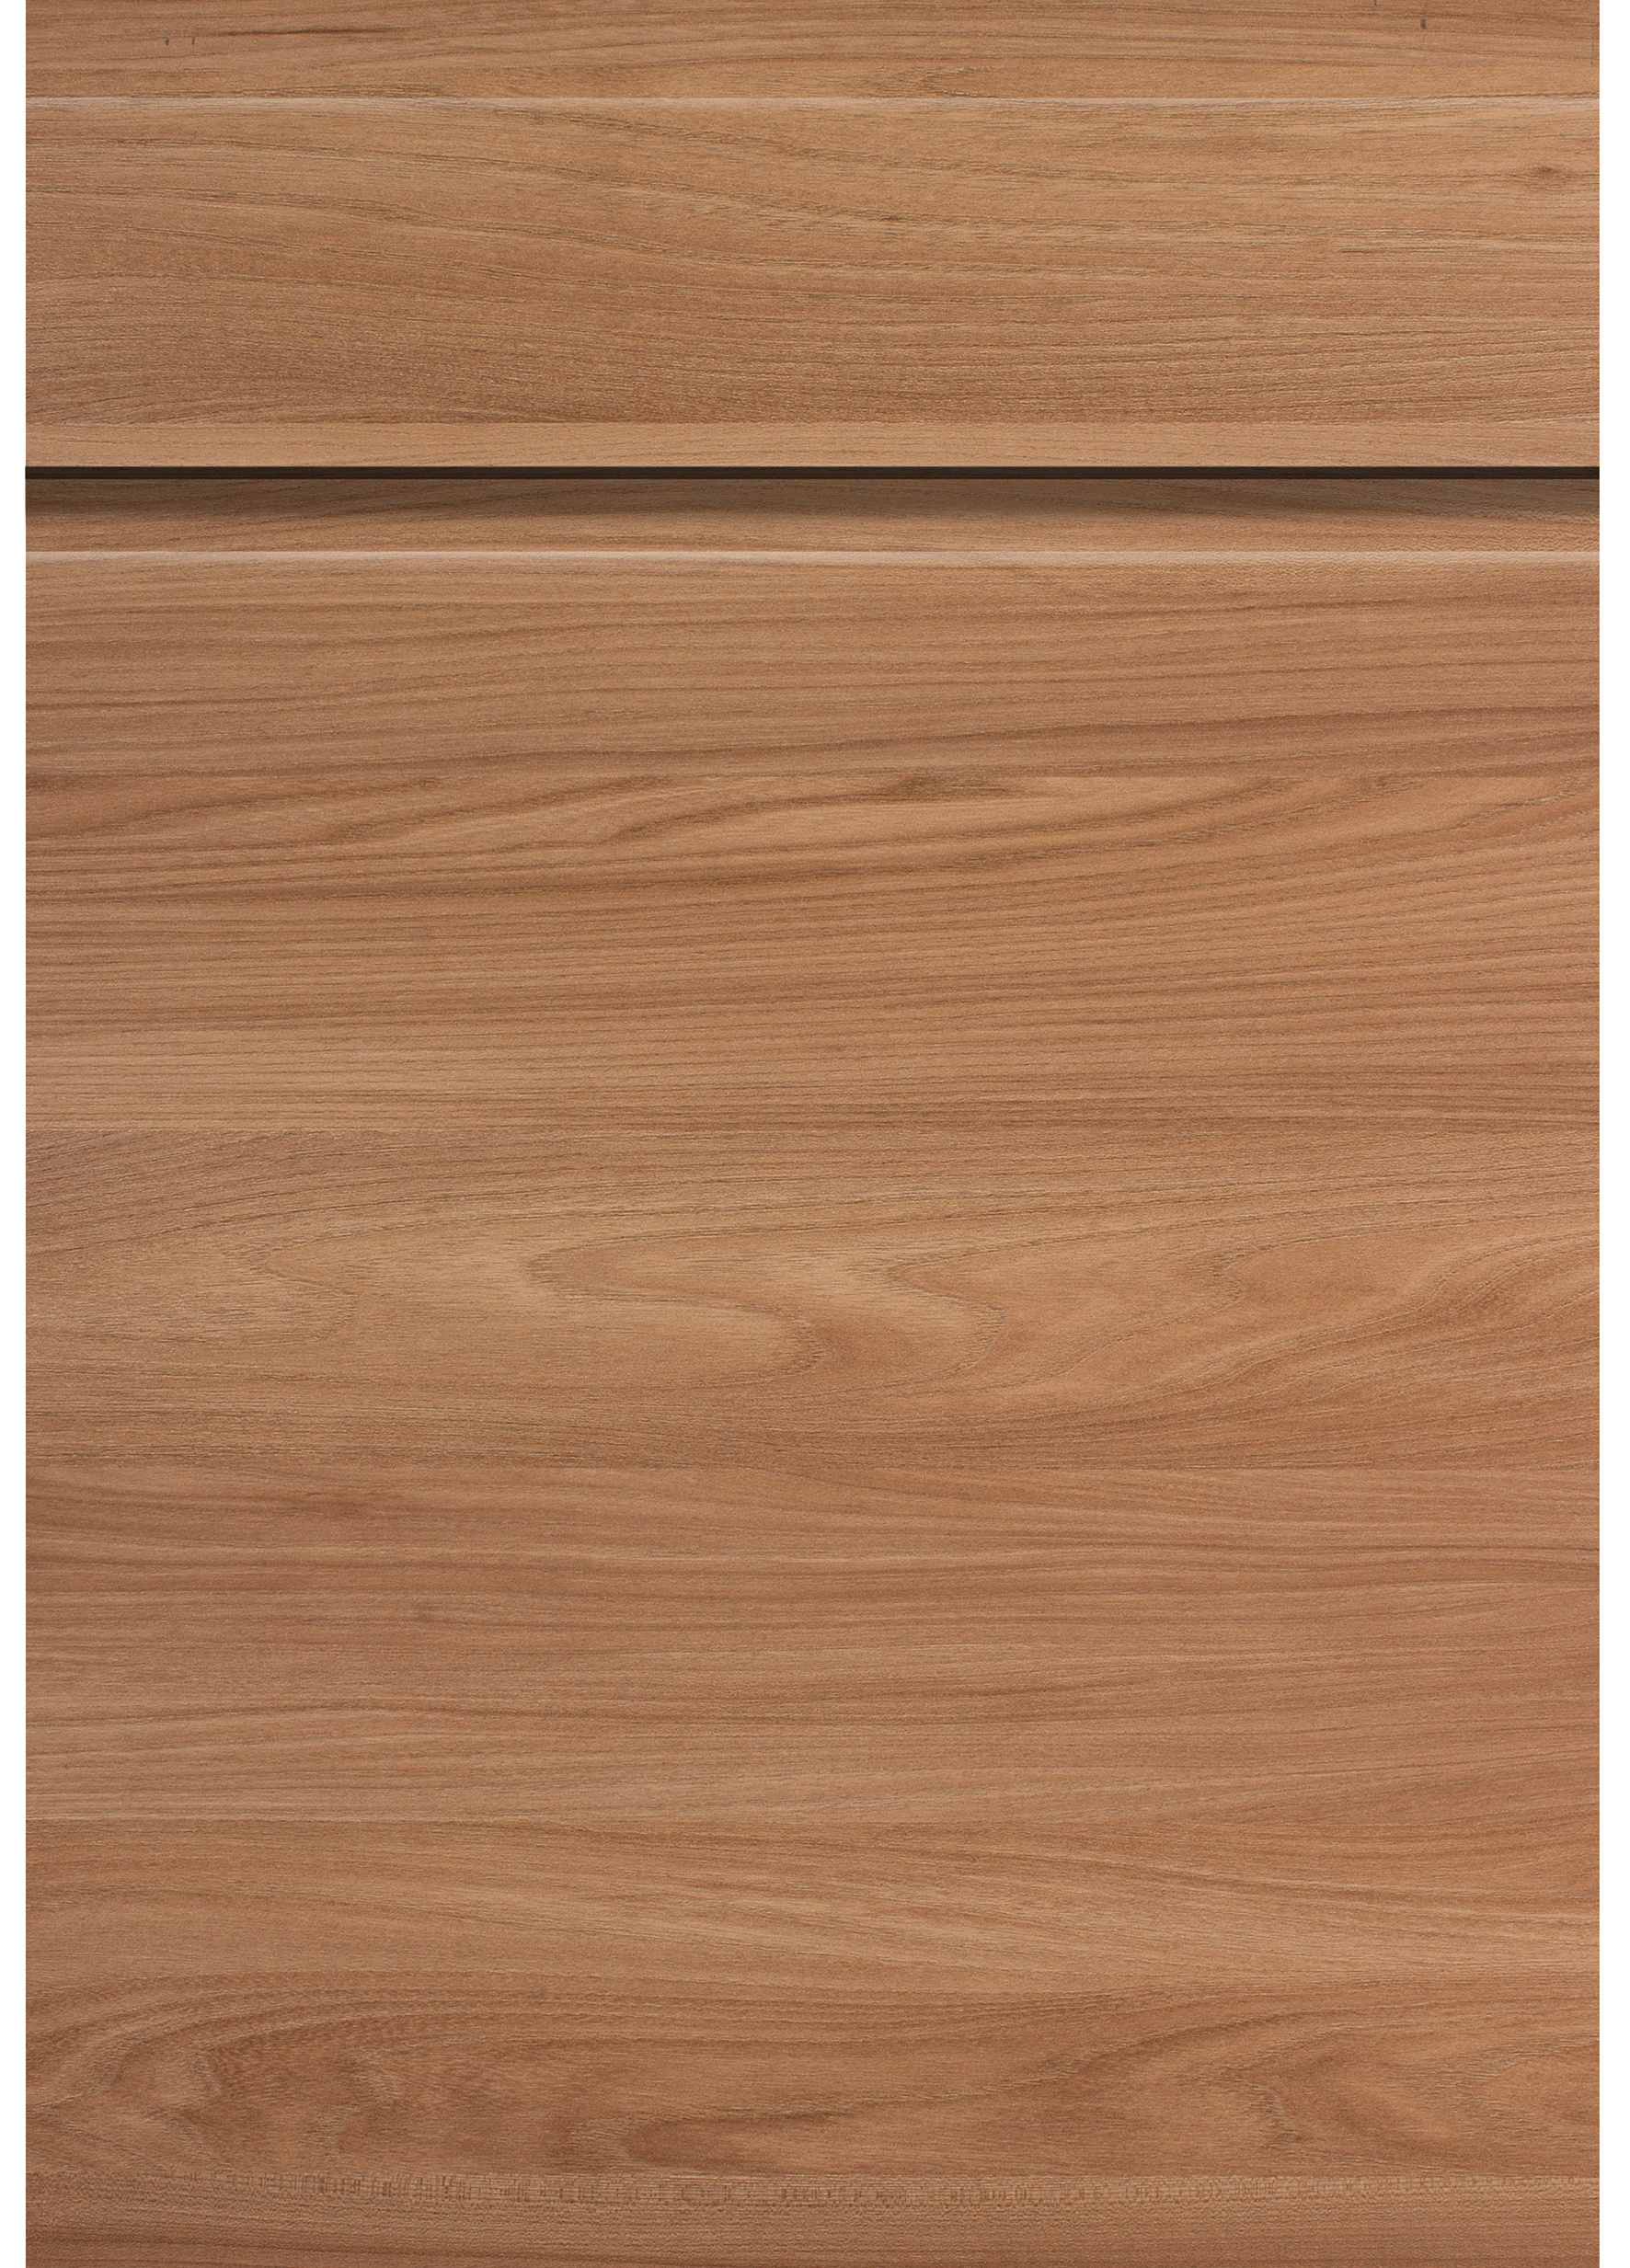 Malton Natural Elm Door